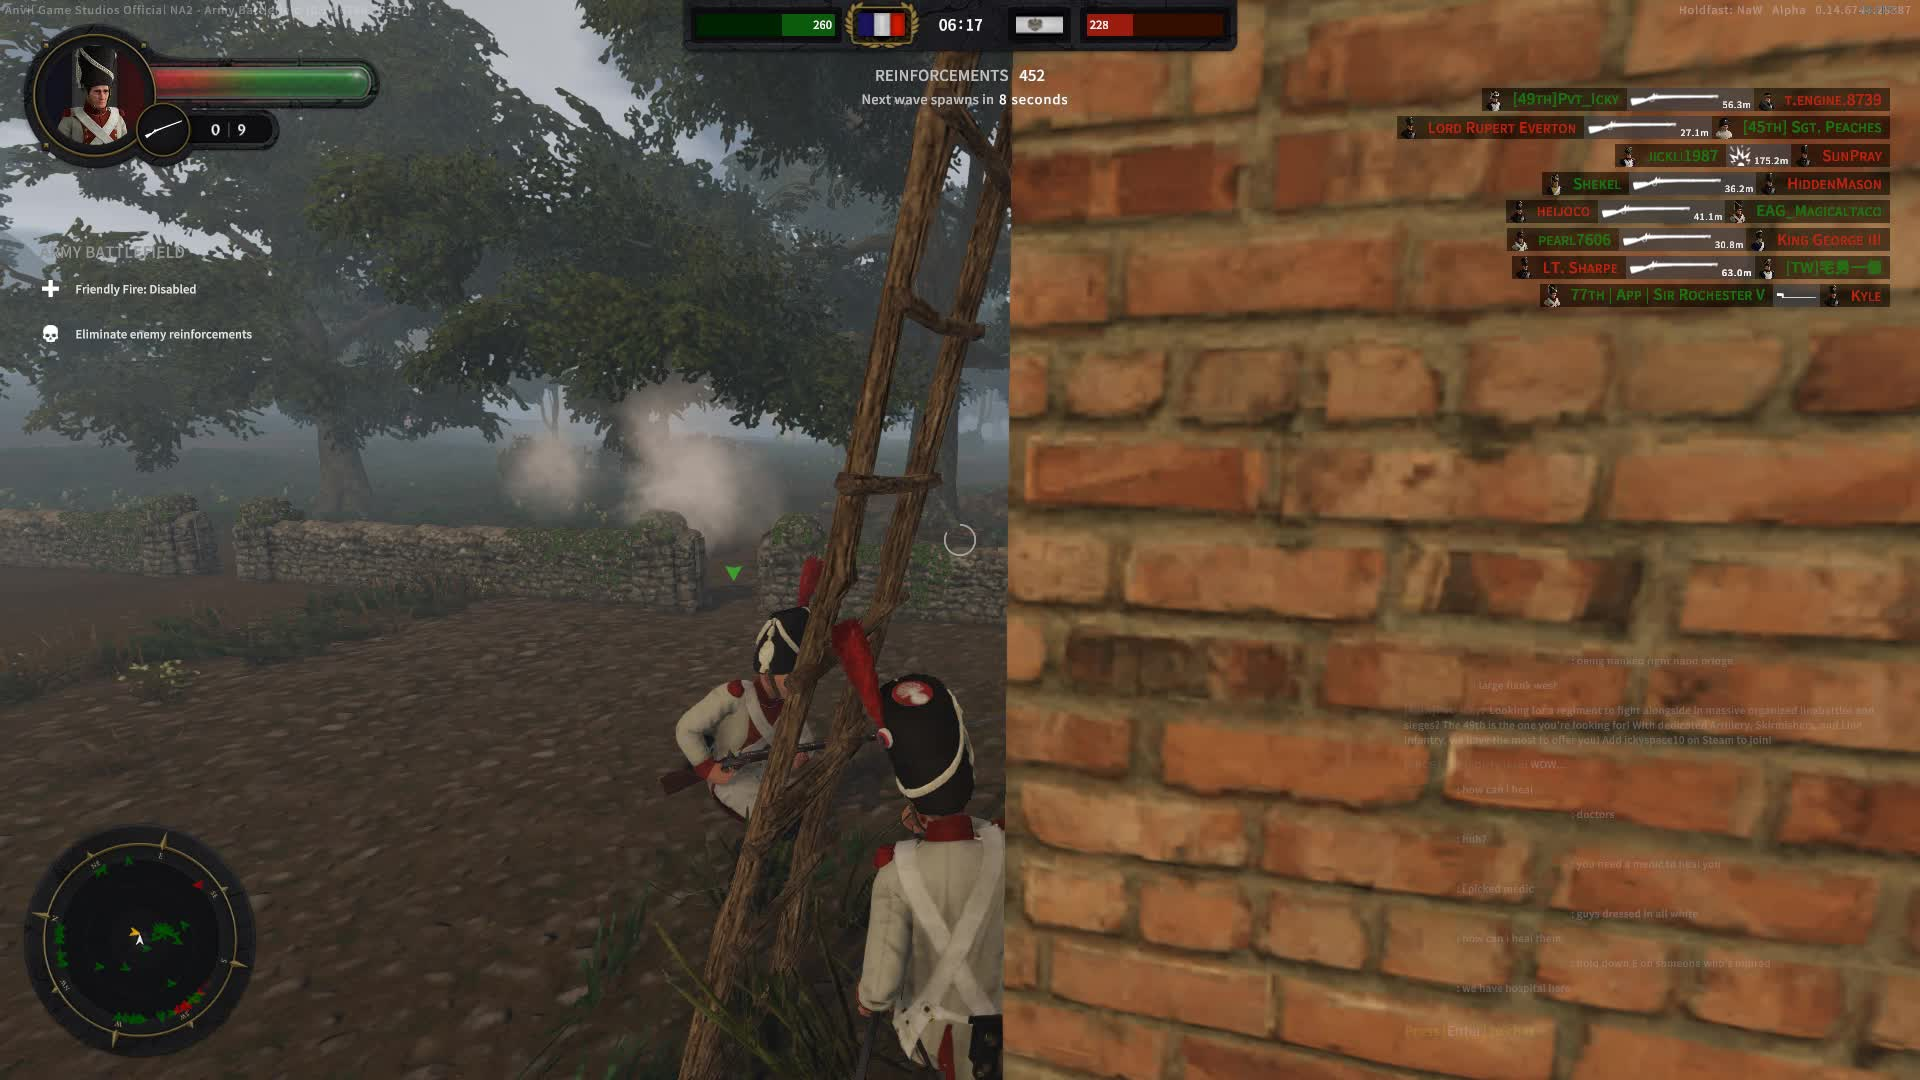 holdfast nations at war officer meetup gone wrong gone sexual